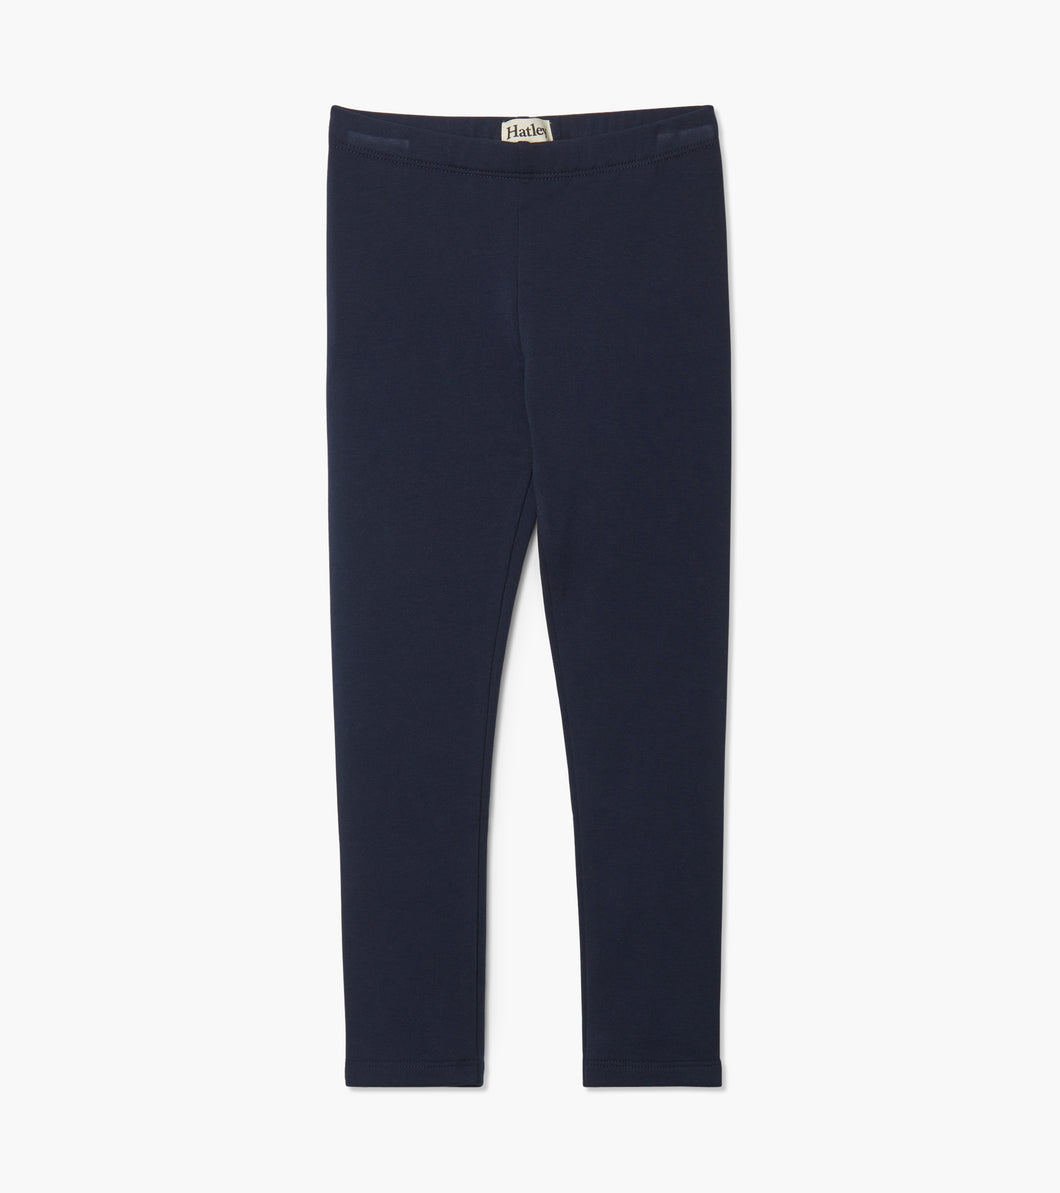 Navy Cozy Leggings